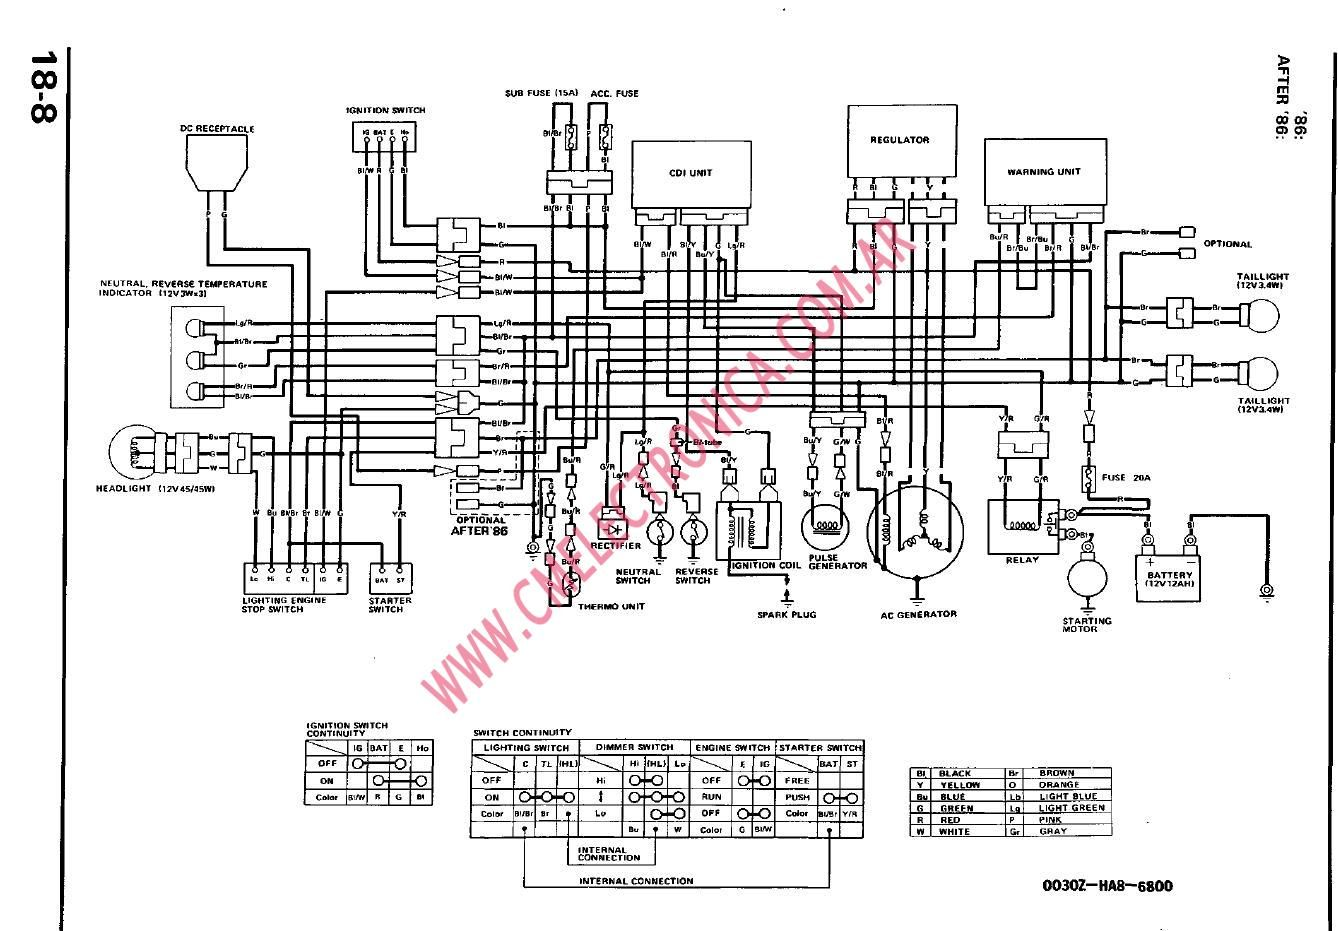 honda 300ex wiring harness wiring diagram1998 trx 250 fourtrax recon wiring 1993 honda 300ex wiring diagram1998 trx 250 fourtrax recon wiring